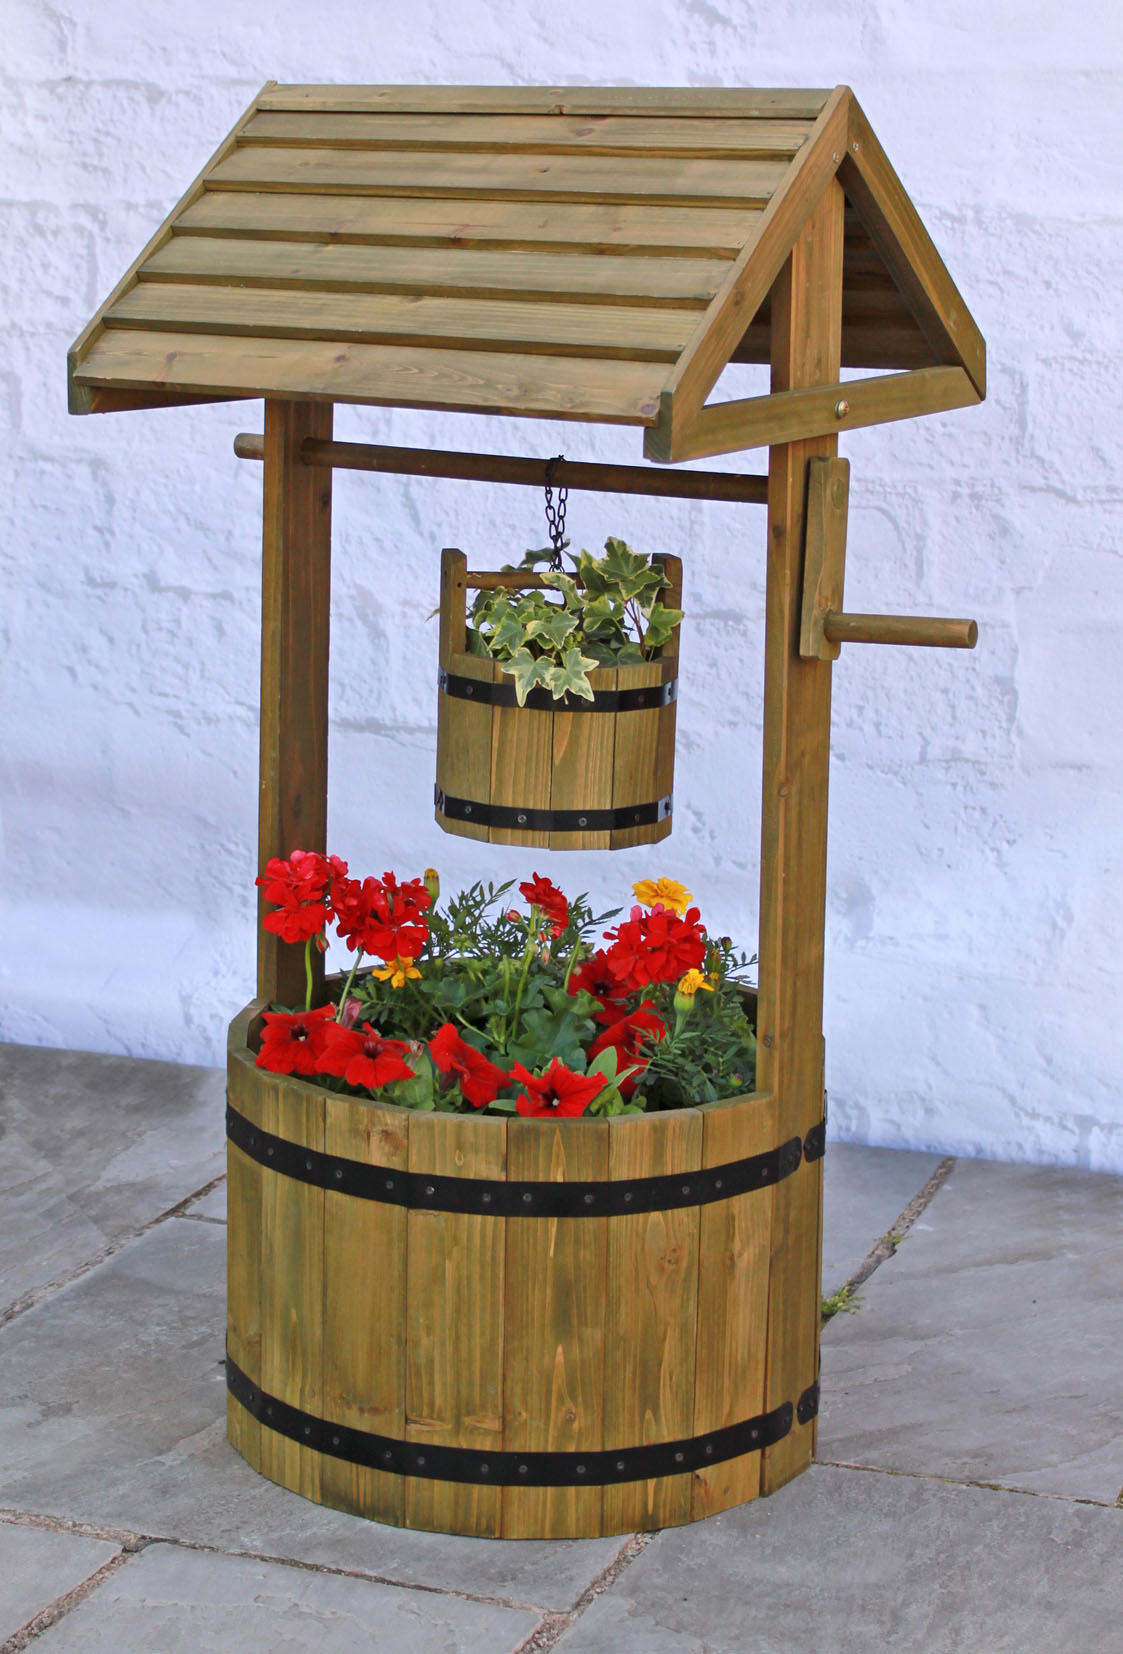 Wooden Decorative Wishing Well Planter H1m X D45cm 56 99